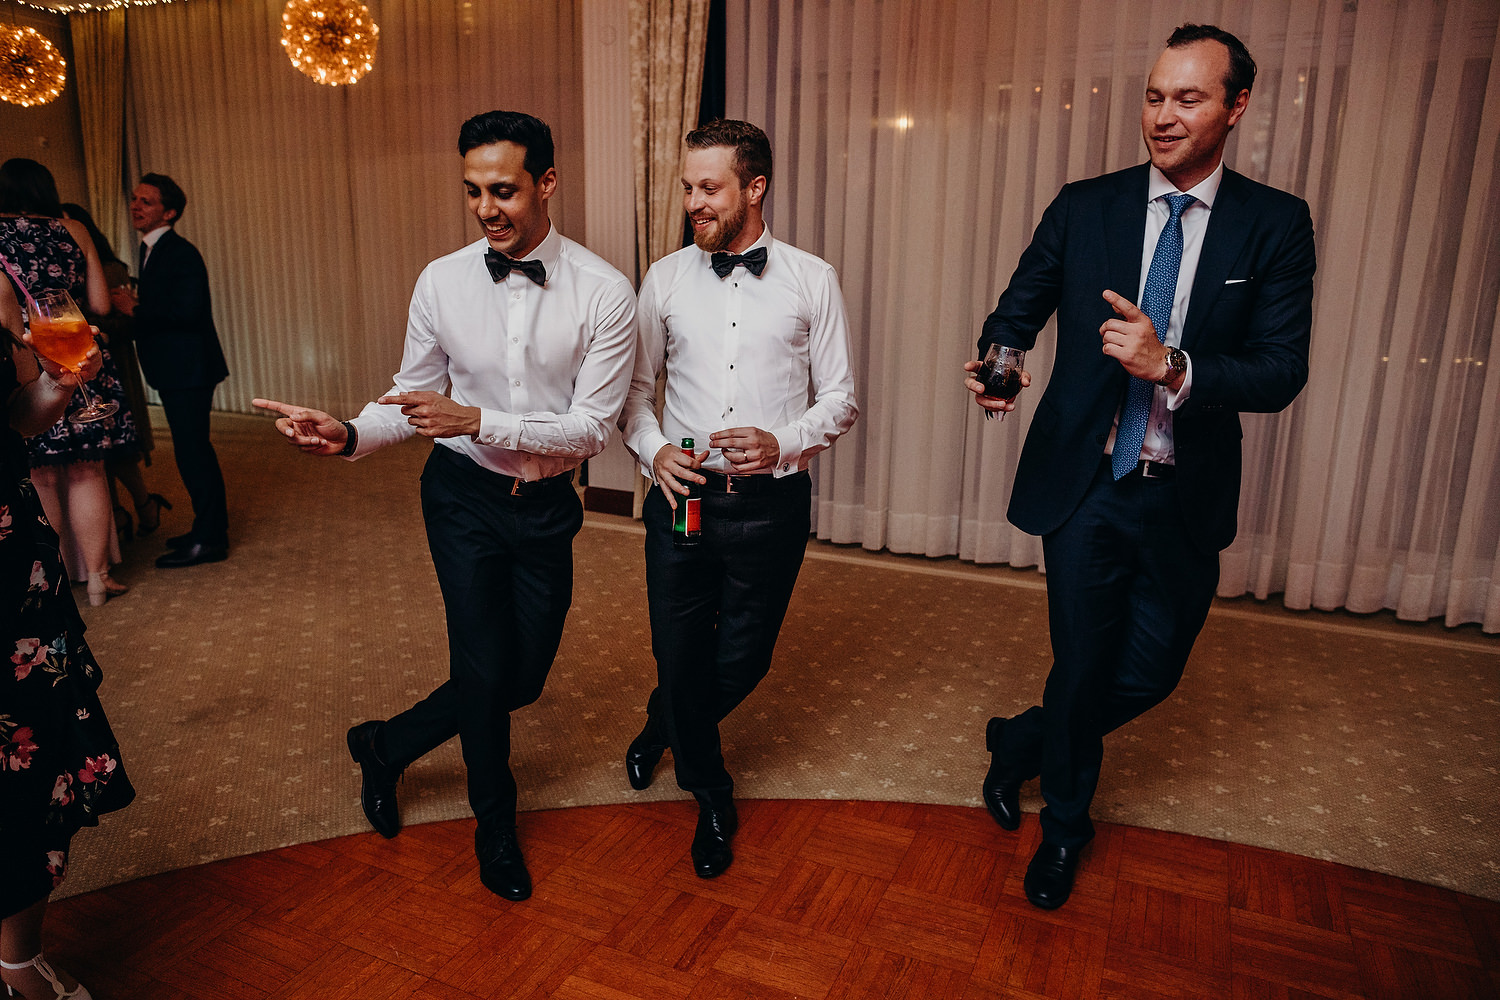 guys dancing at wedding